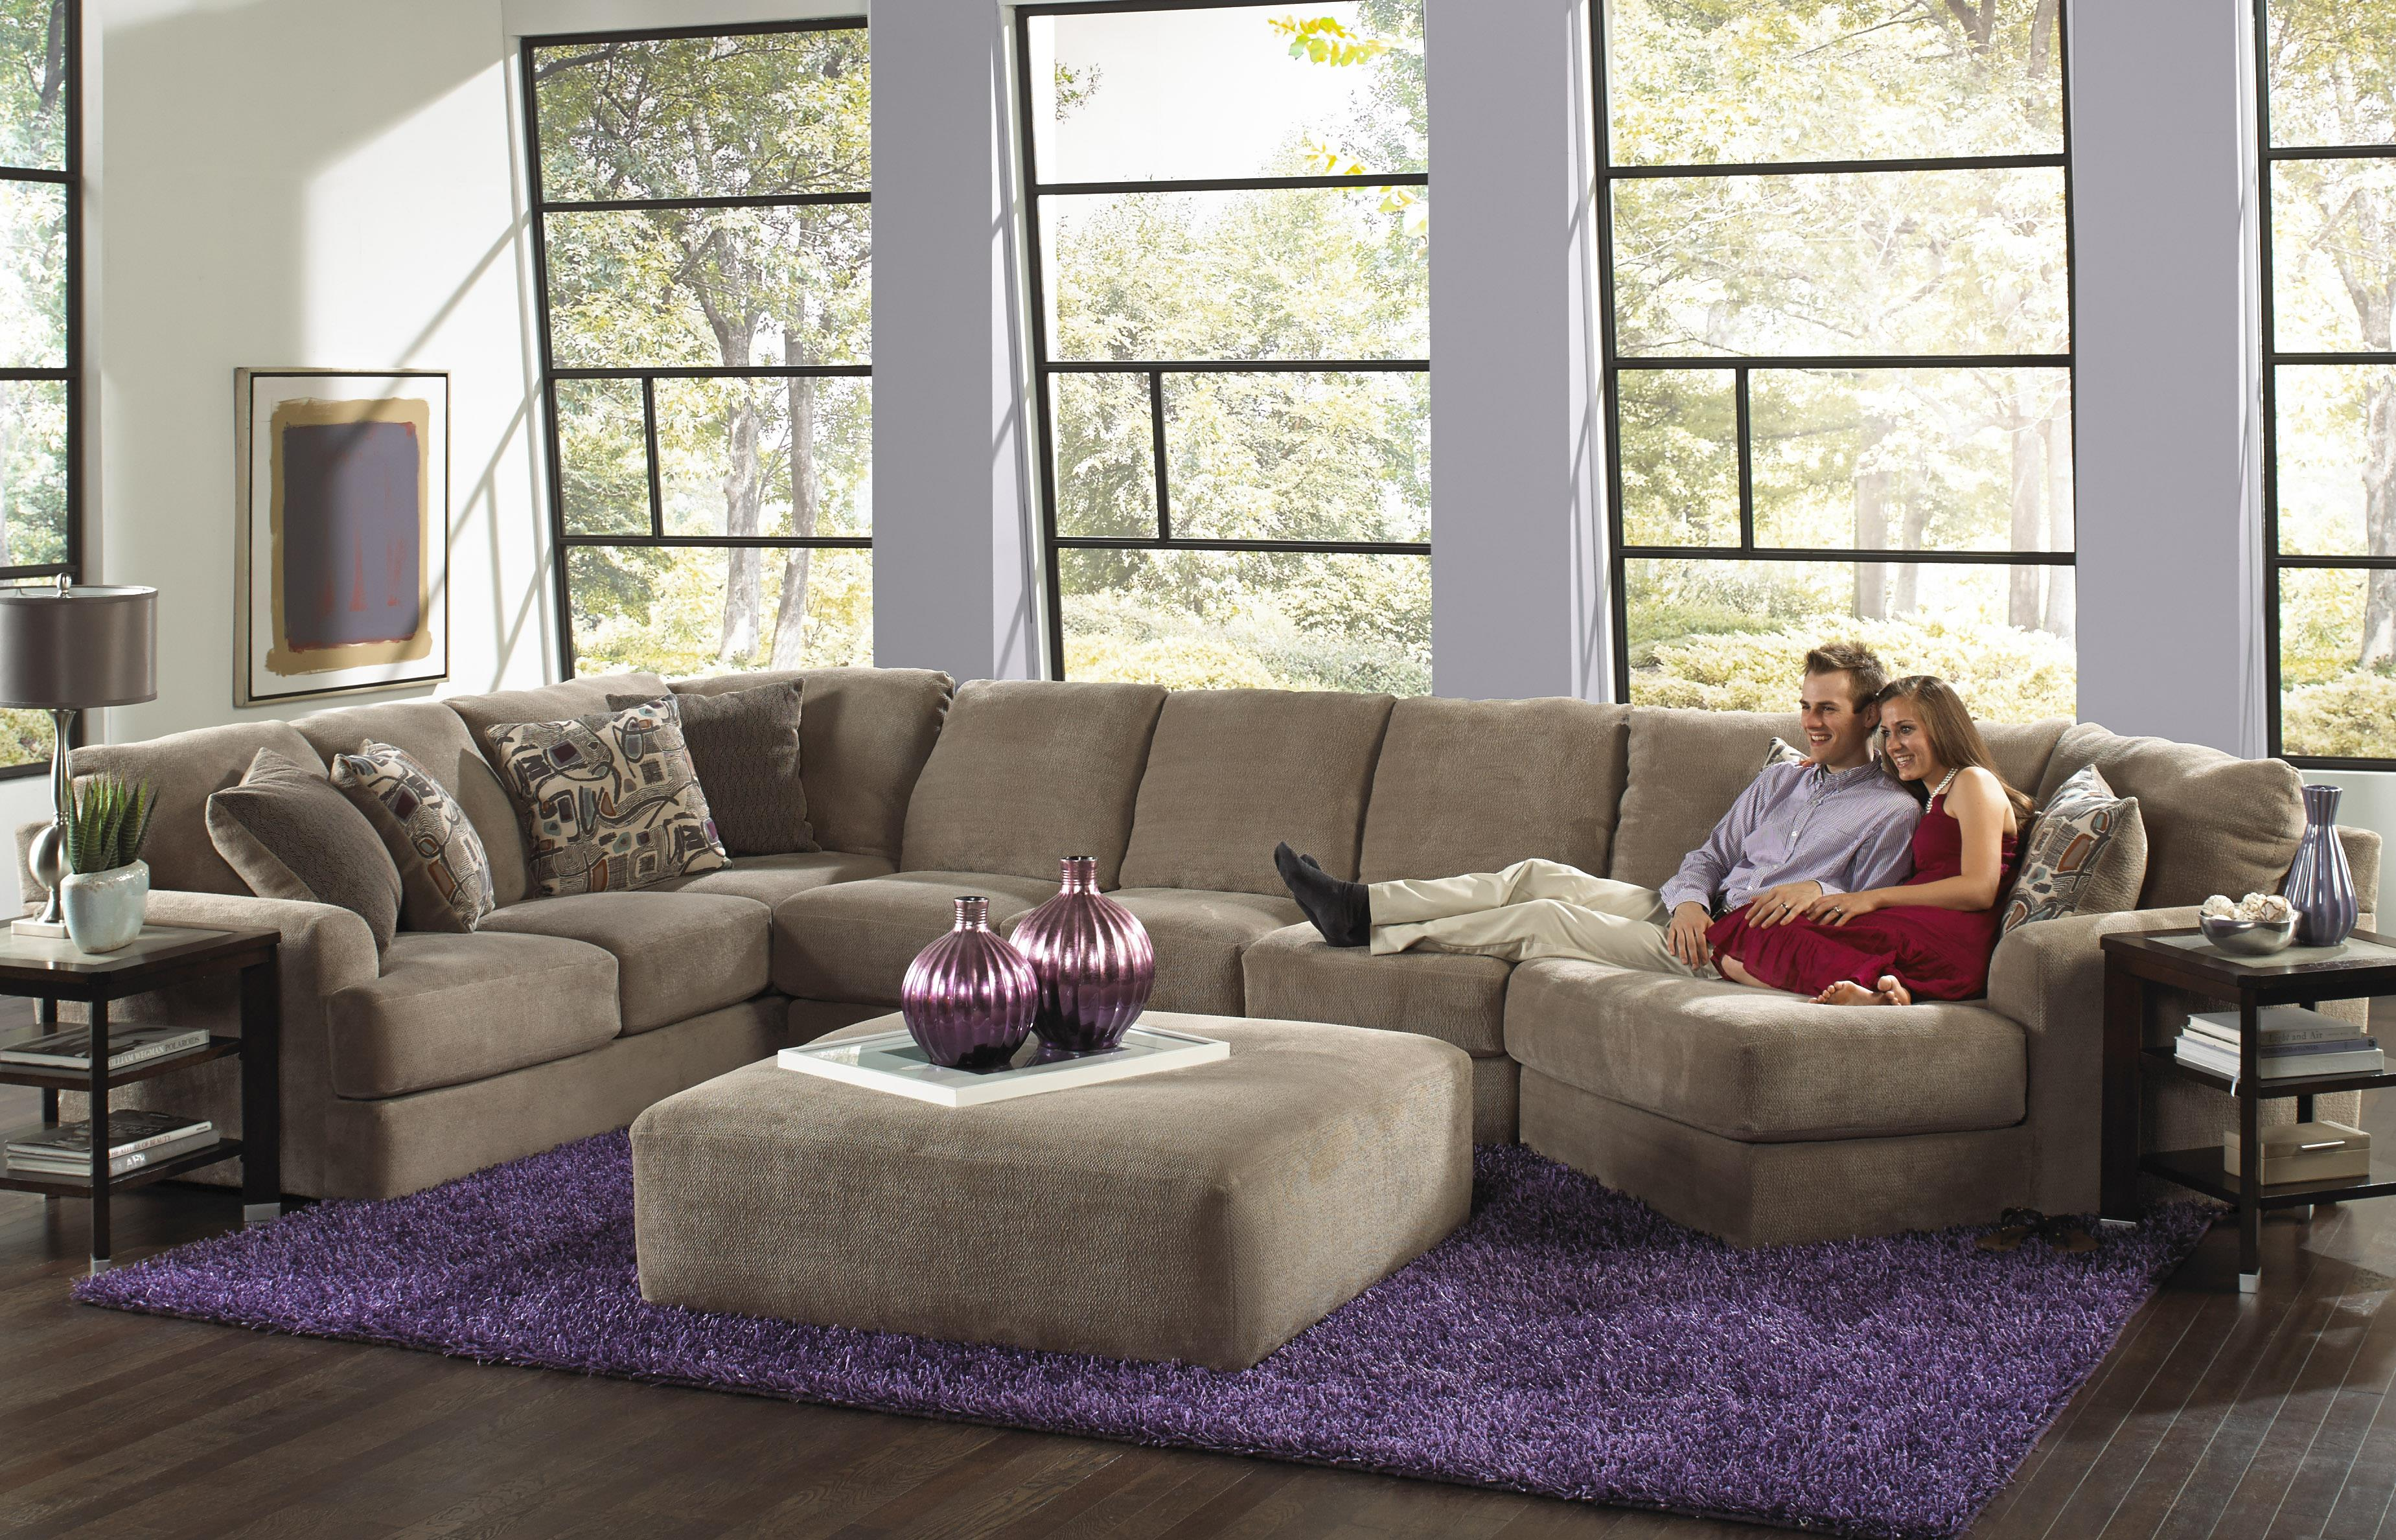 Six Seat Sectional Sofa by Jackson Furniture